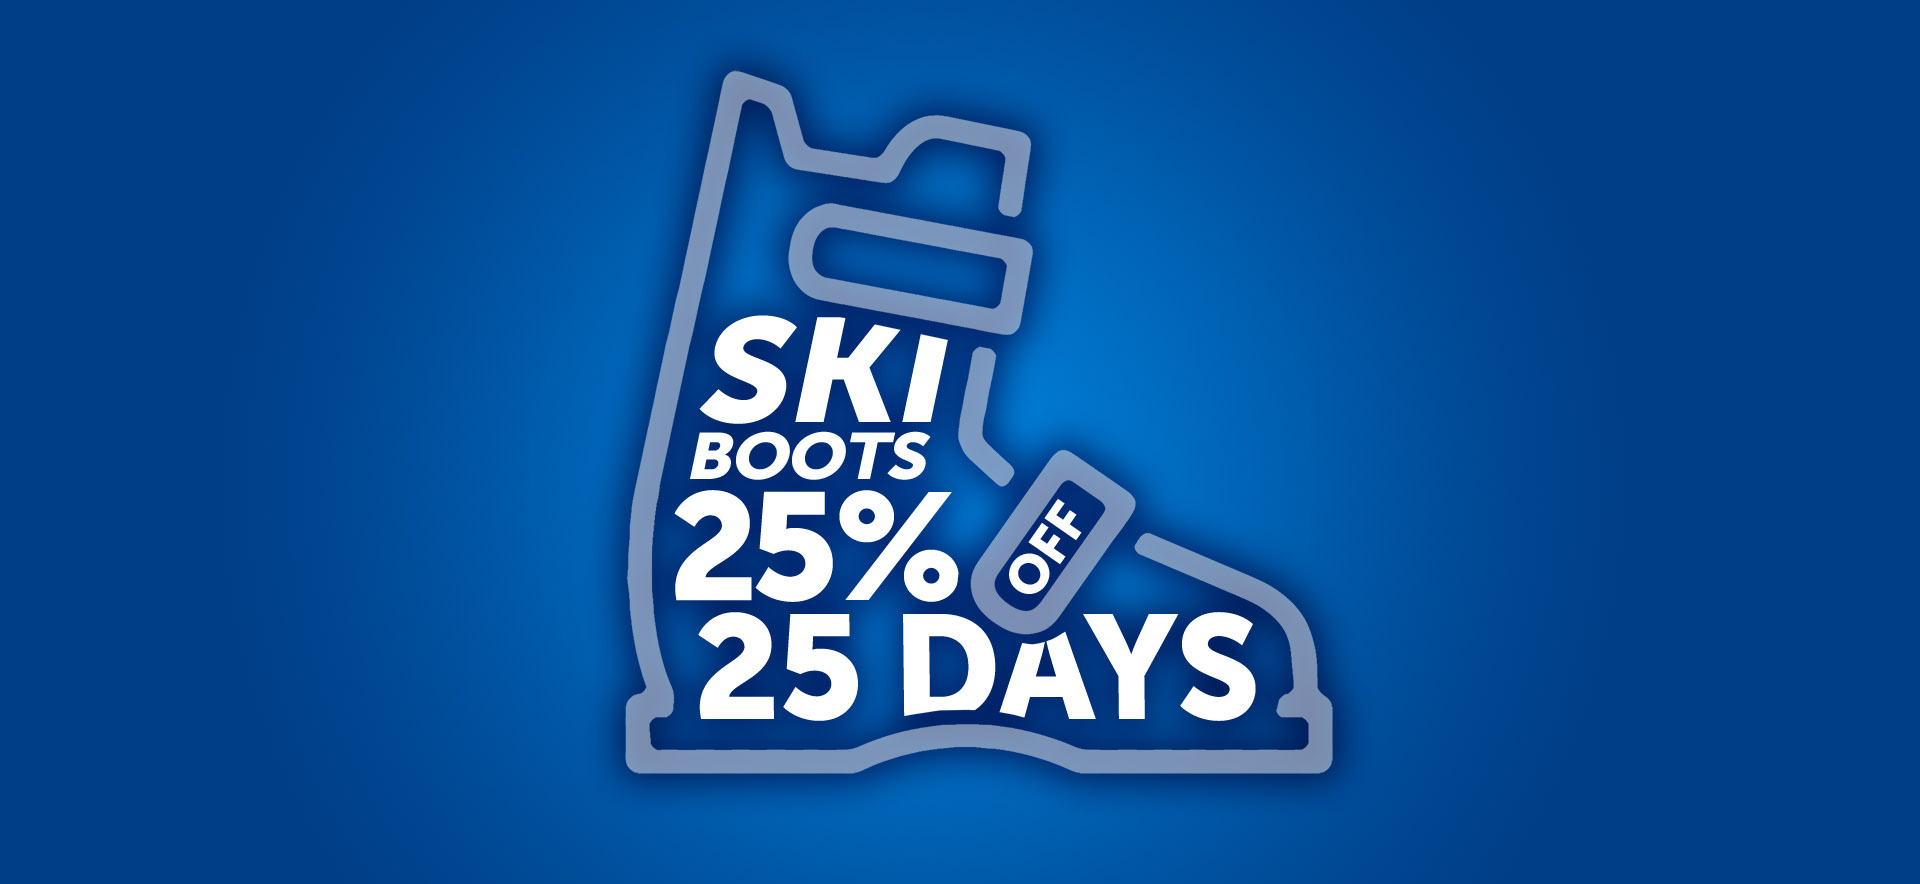 Ski boot 25% off for 25 days